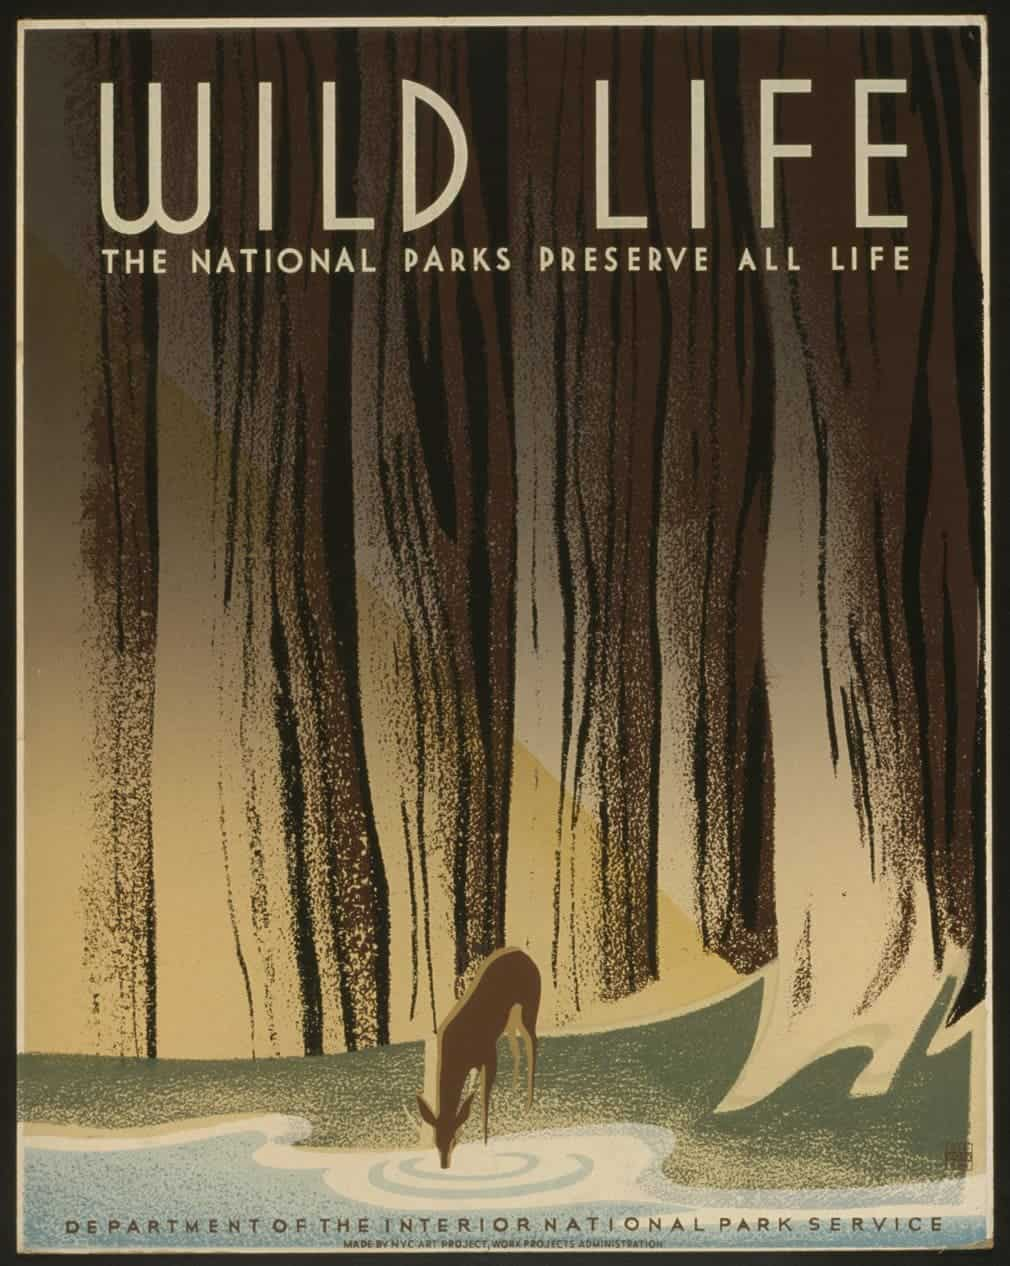 All life is sacred in the national park, 1940.